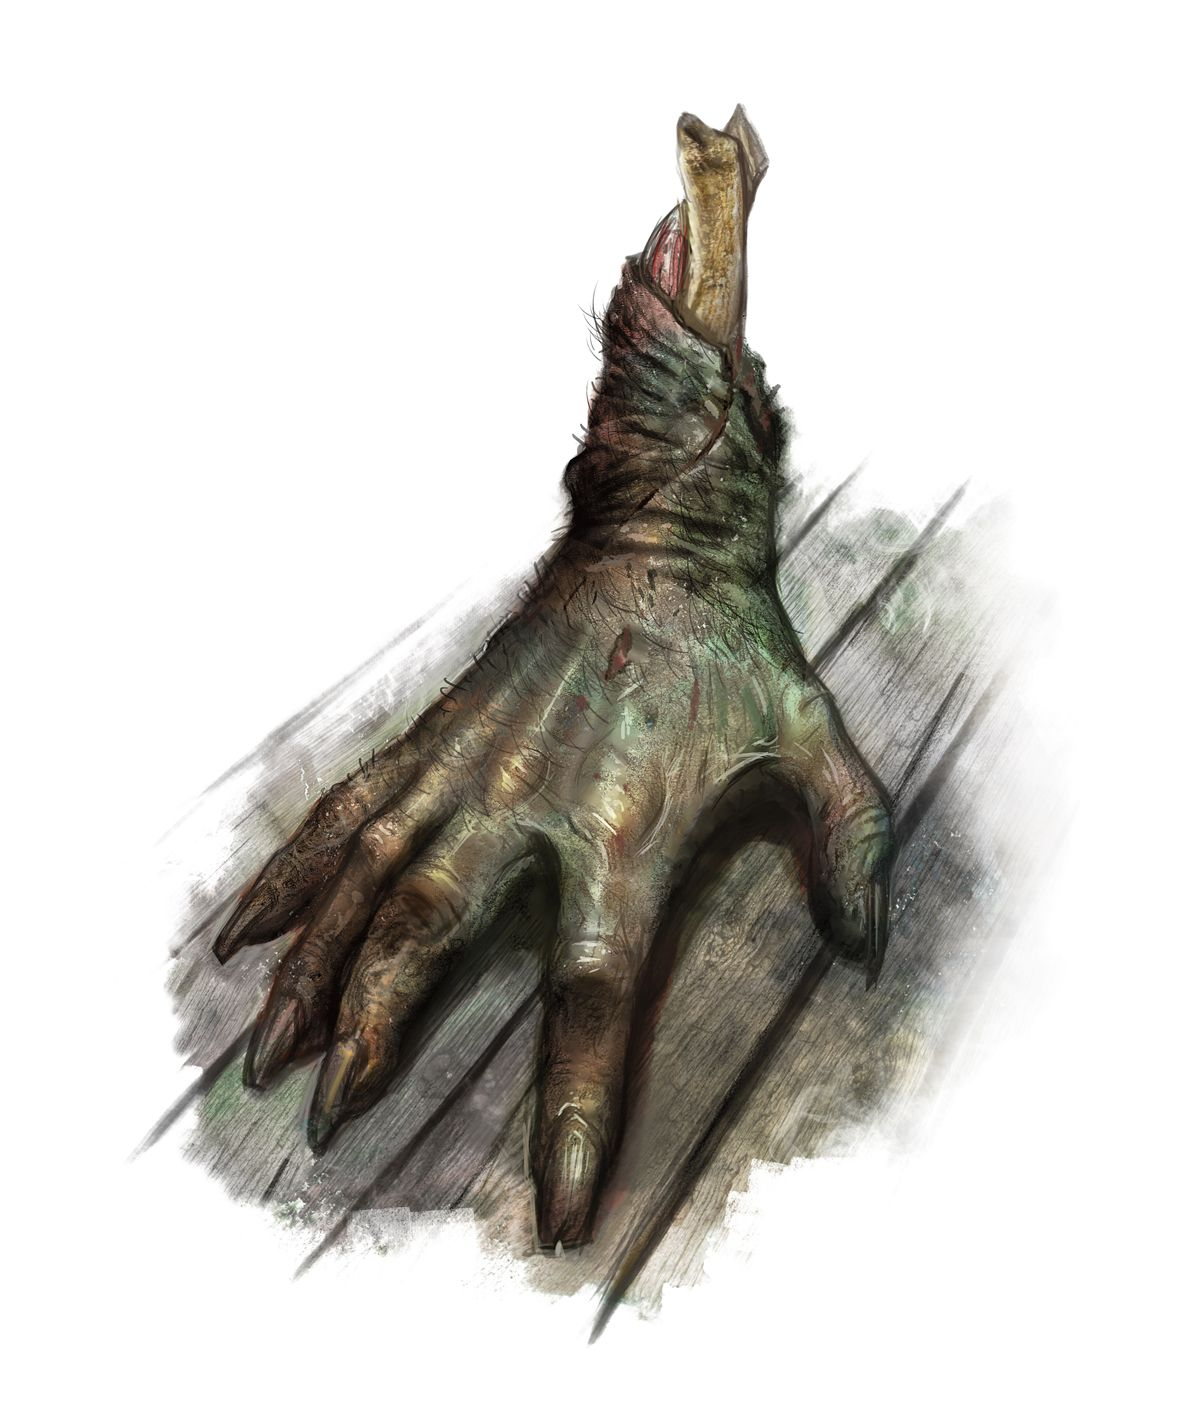 Crawling Claw (from the D&D fifth edition Monster Manual). Art by Jim Pavelec